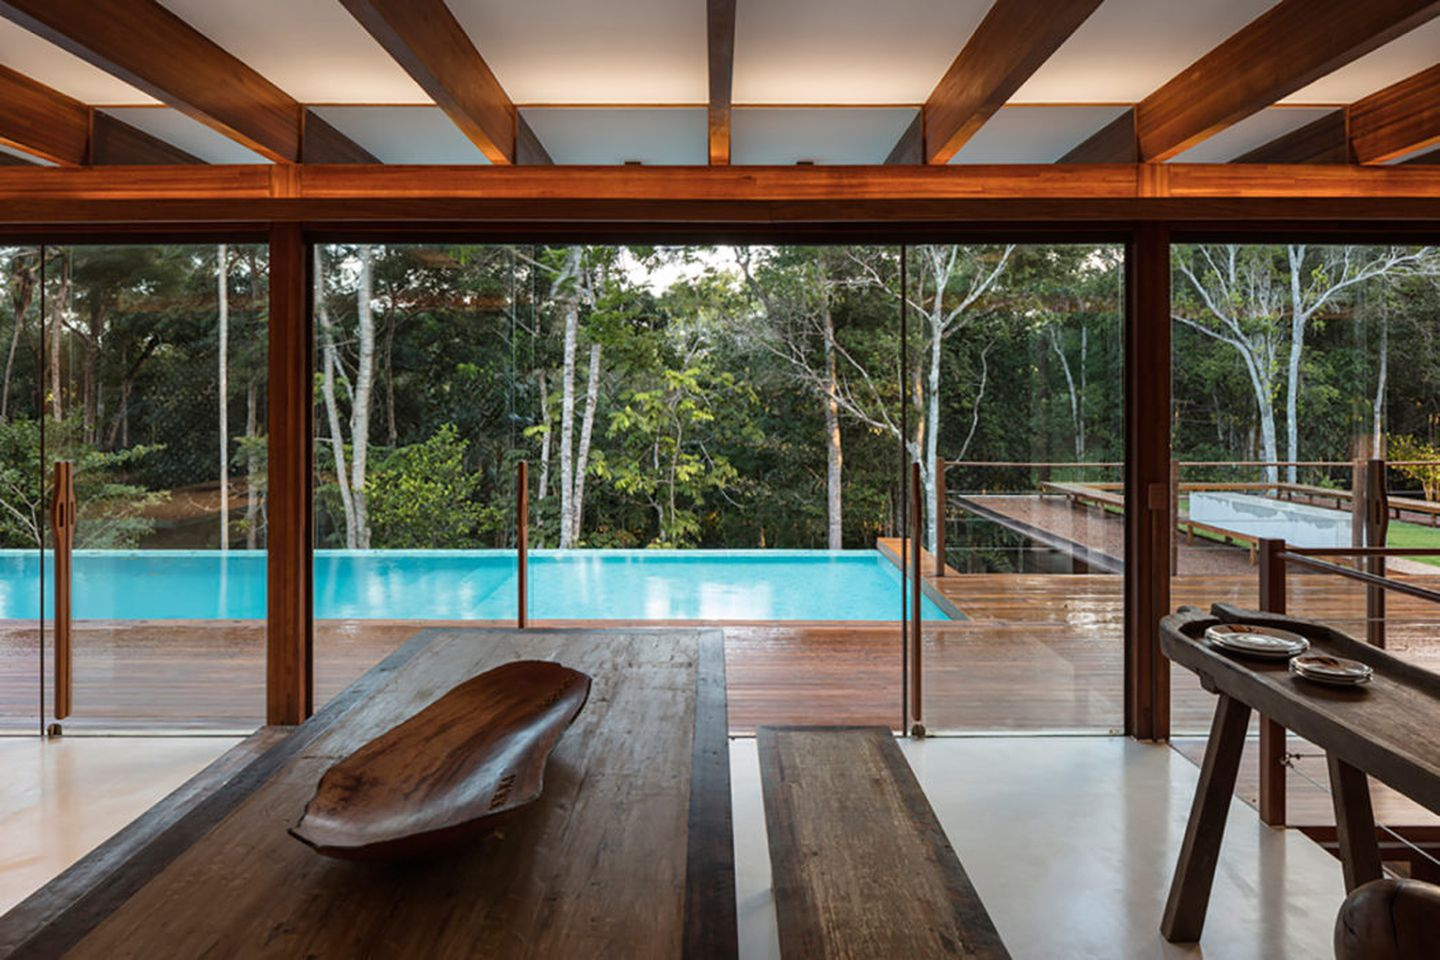 Buy a jungle house in zil for the ultimate tree change Jungle House Design on space house design, princess house design, cave house design, adventure house design, fishing house design, goth house design, hotel house design, jewish house design, sports house design, puzzle house design, retro house design, gym house design, beach house design, woodland house design, folk house design, french house design, food house design, medieval house design, urban house design, gold house design,